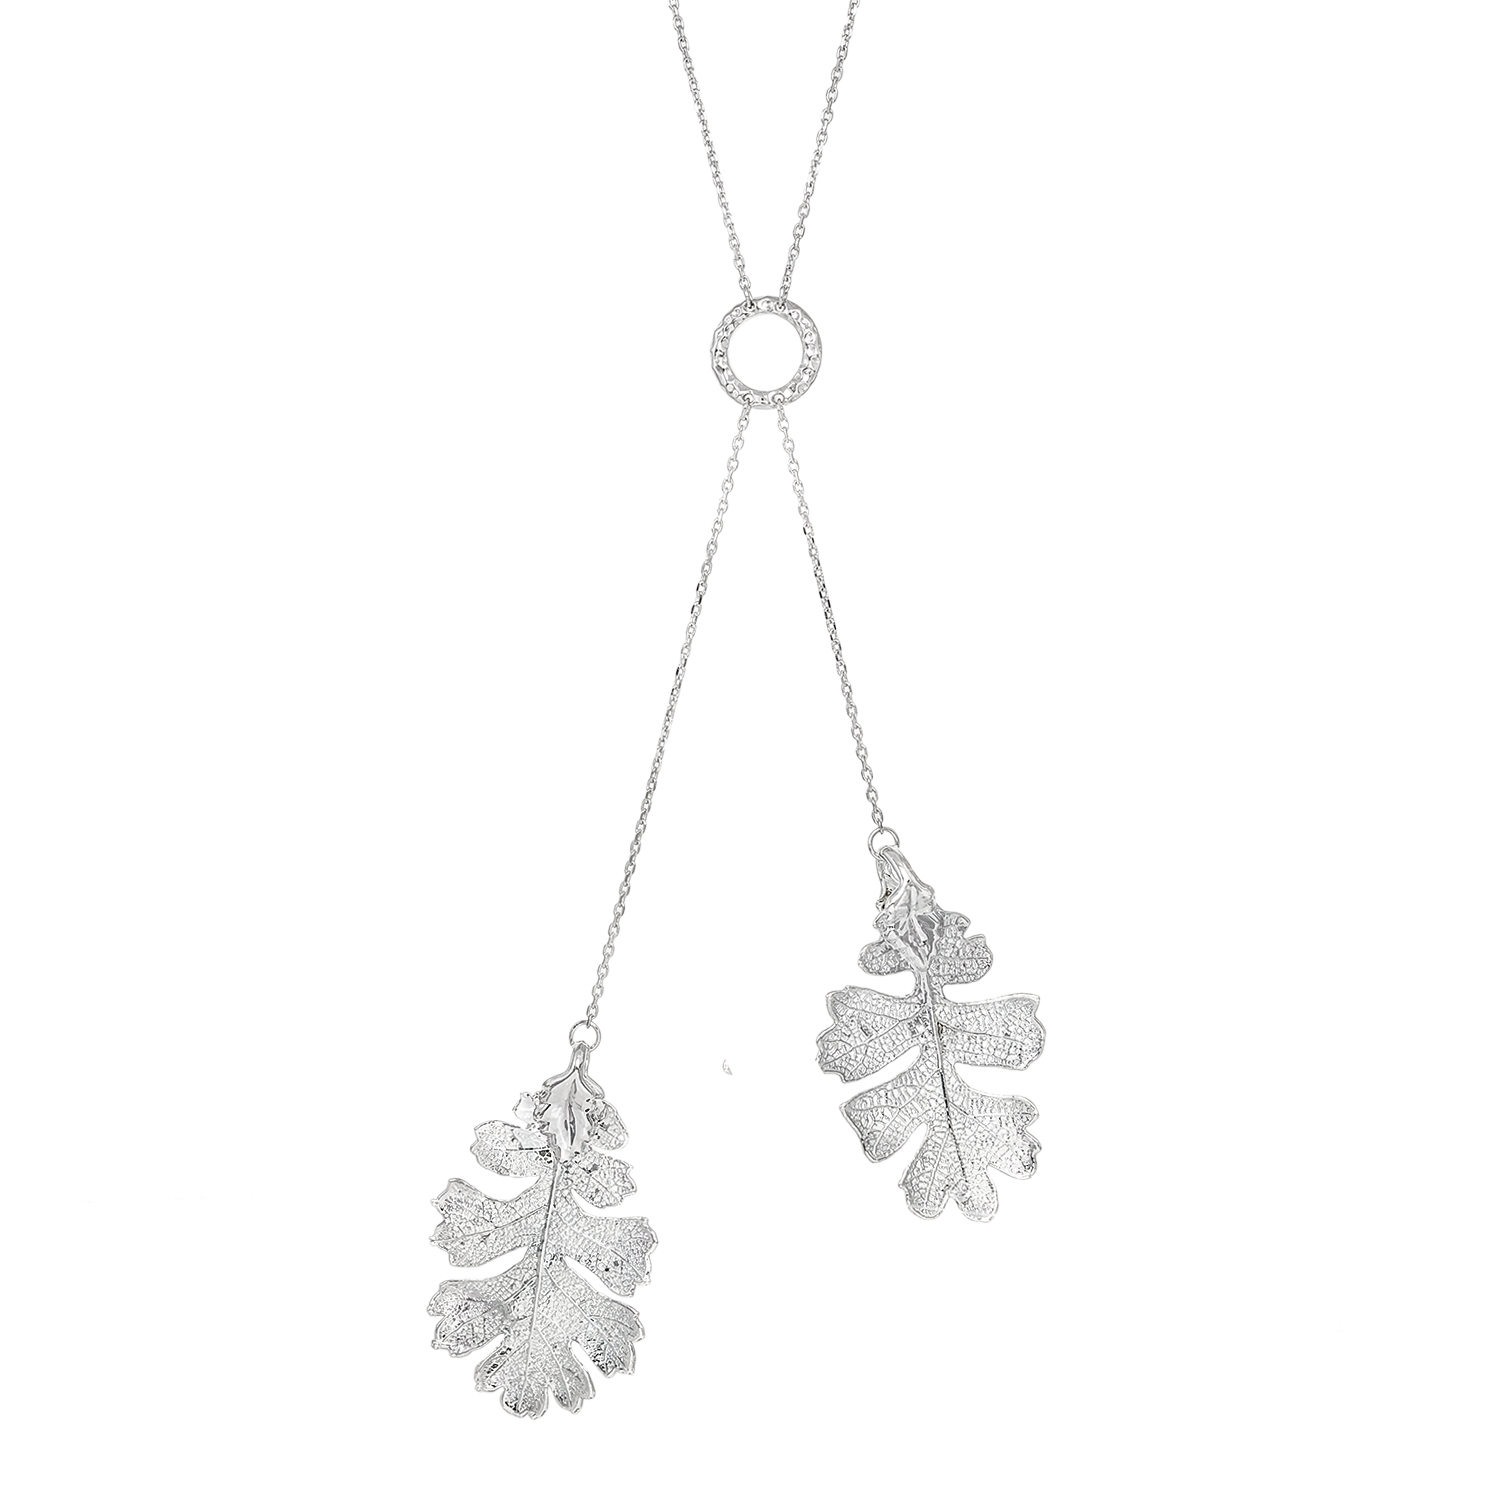 "1x Handcrafted Sterling Silver Double Genuine Oak Leaf Vein Pattern Dangle Pendant Charm Link Chain Necklace 18"" + 2\"" Extender"